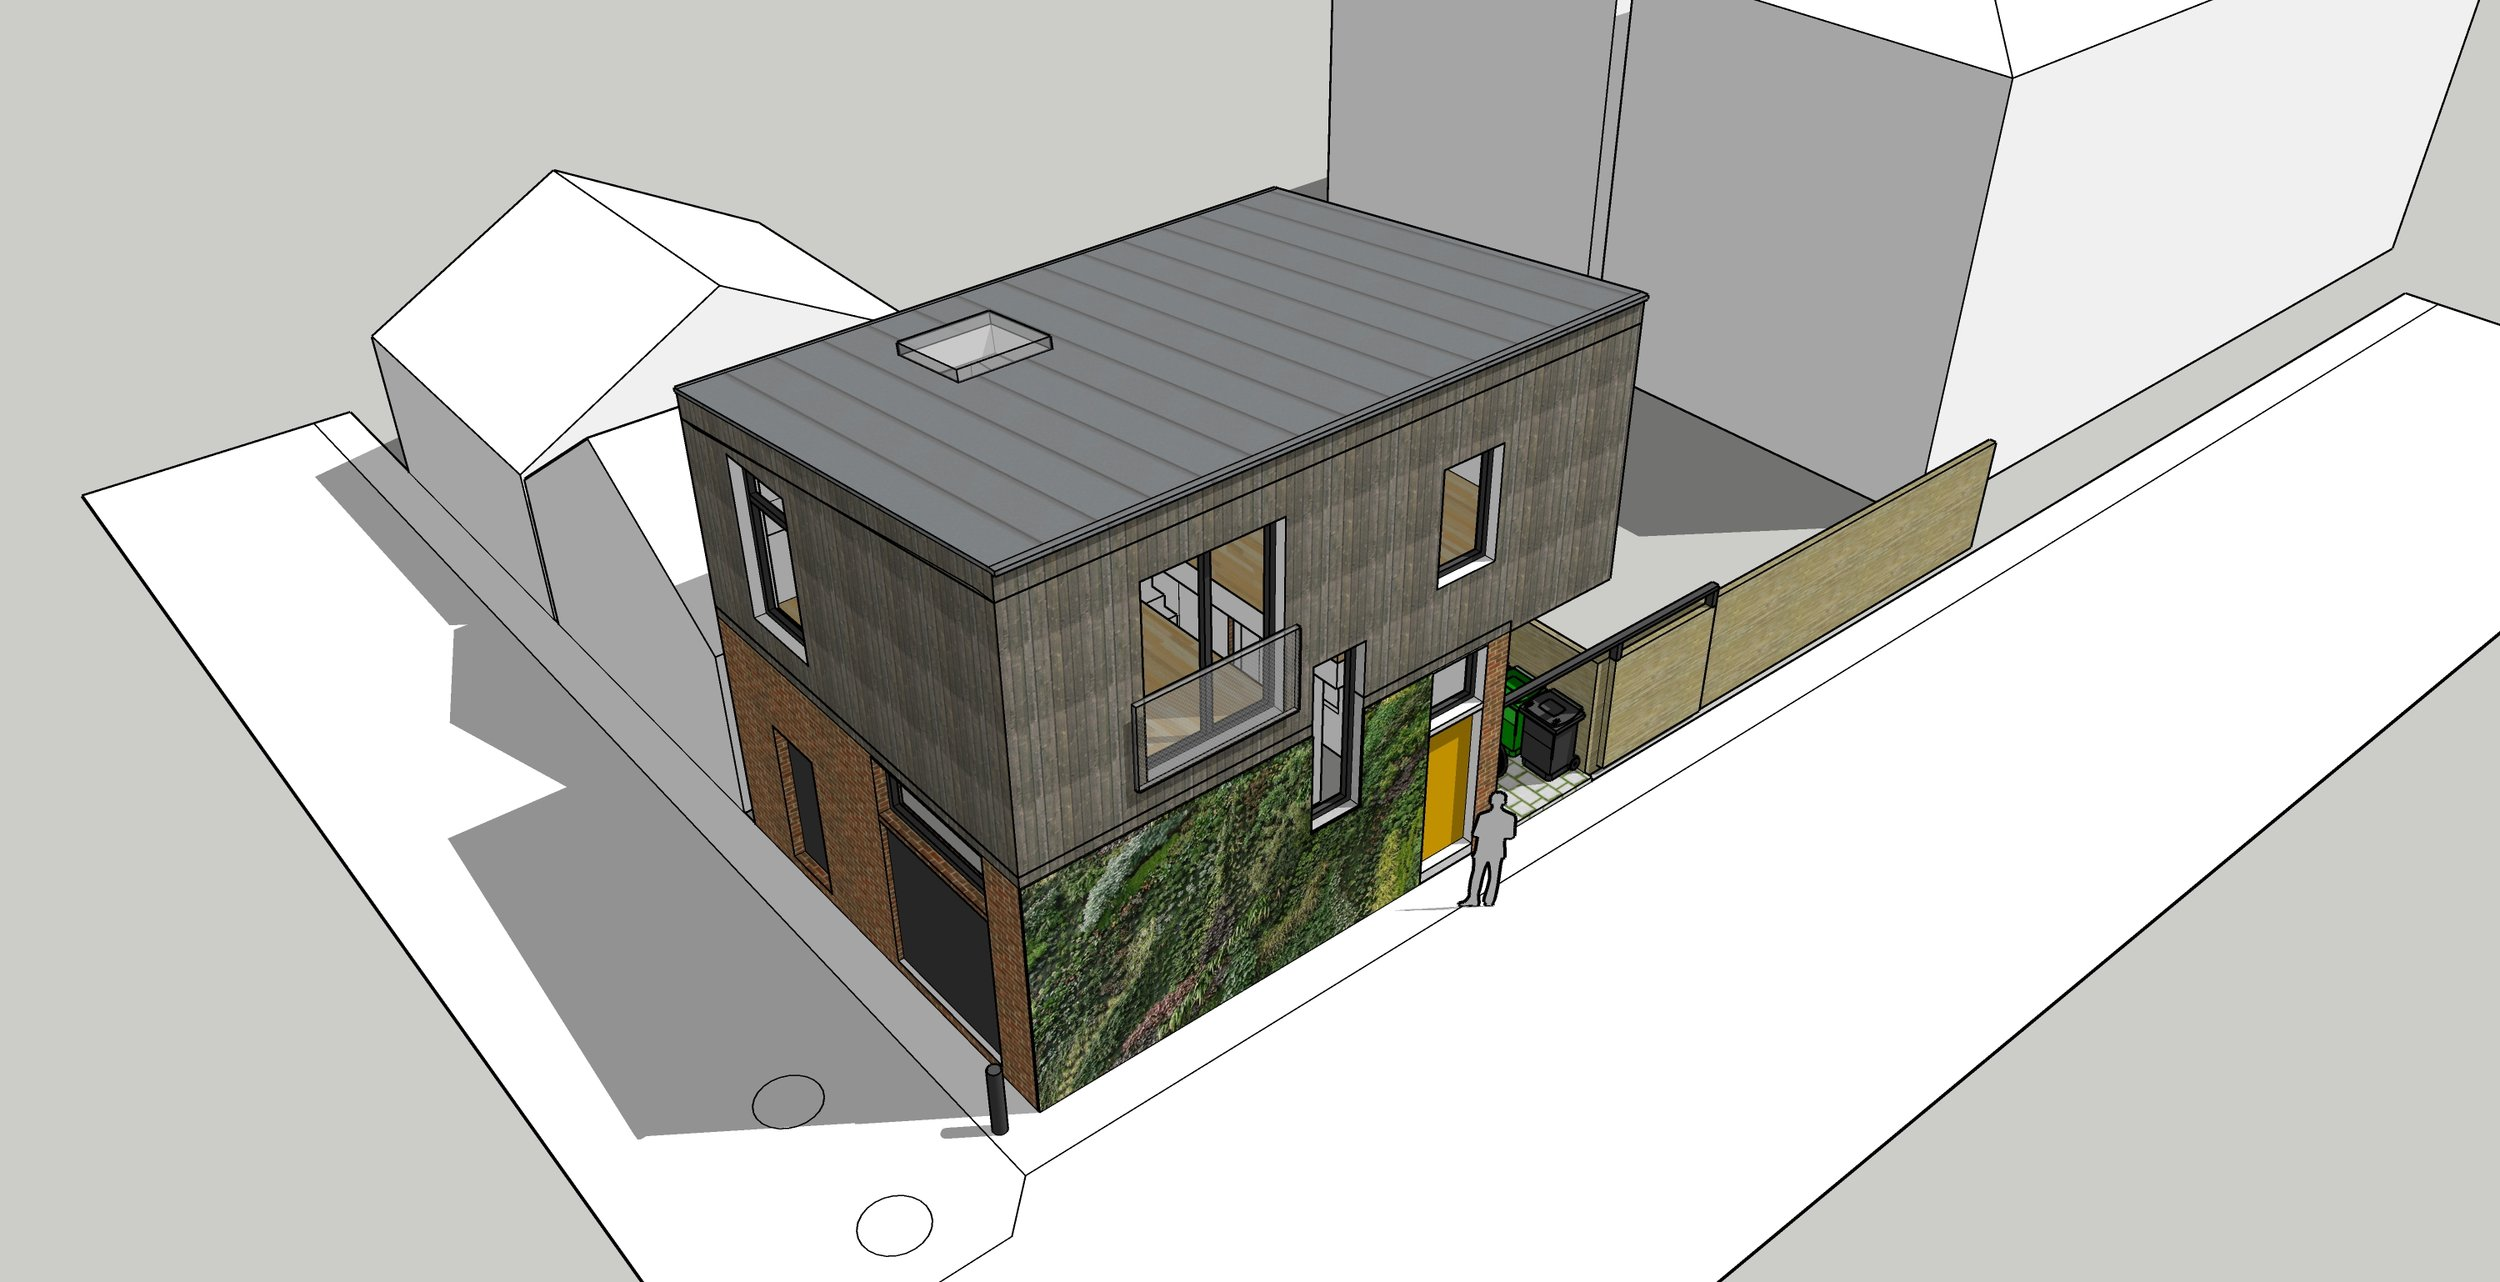 A laneway suite proposal by Drôle House